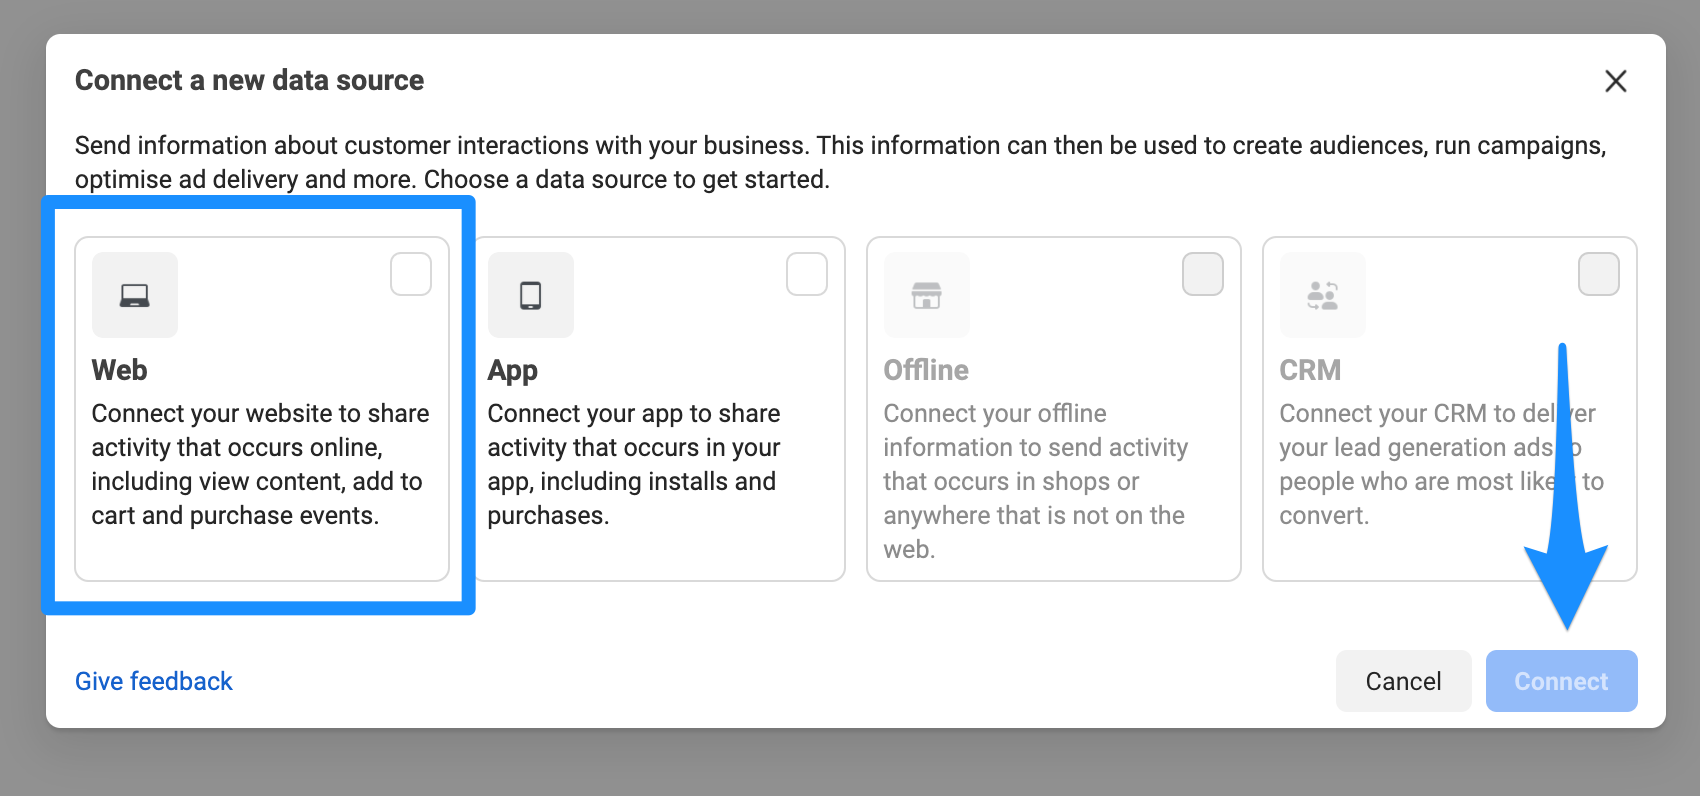 Connect Web to share activity